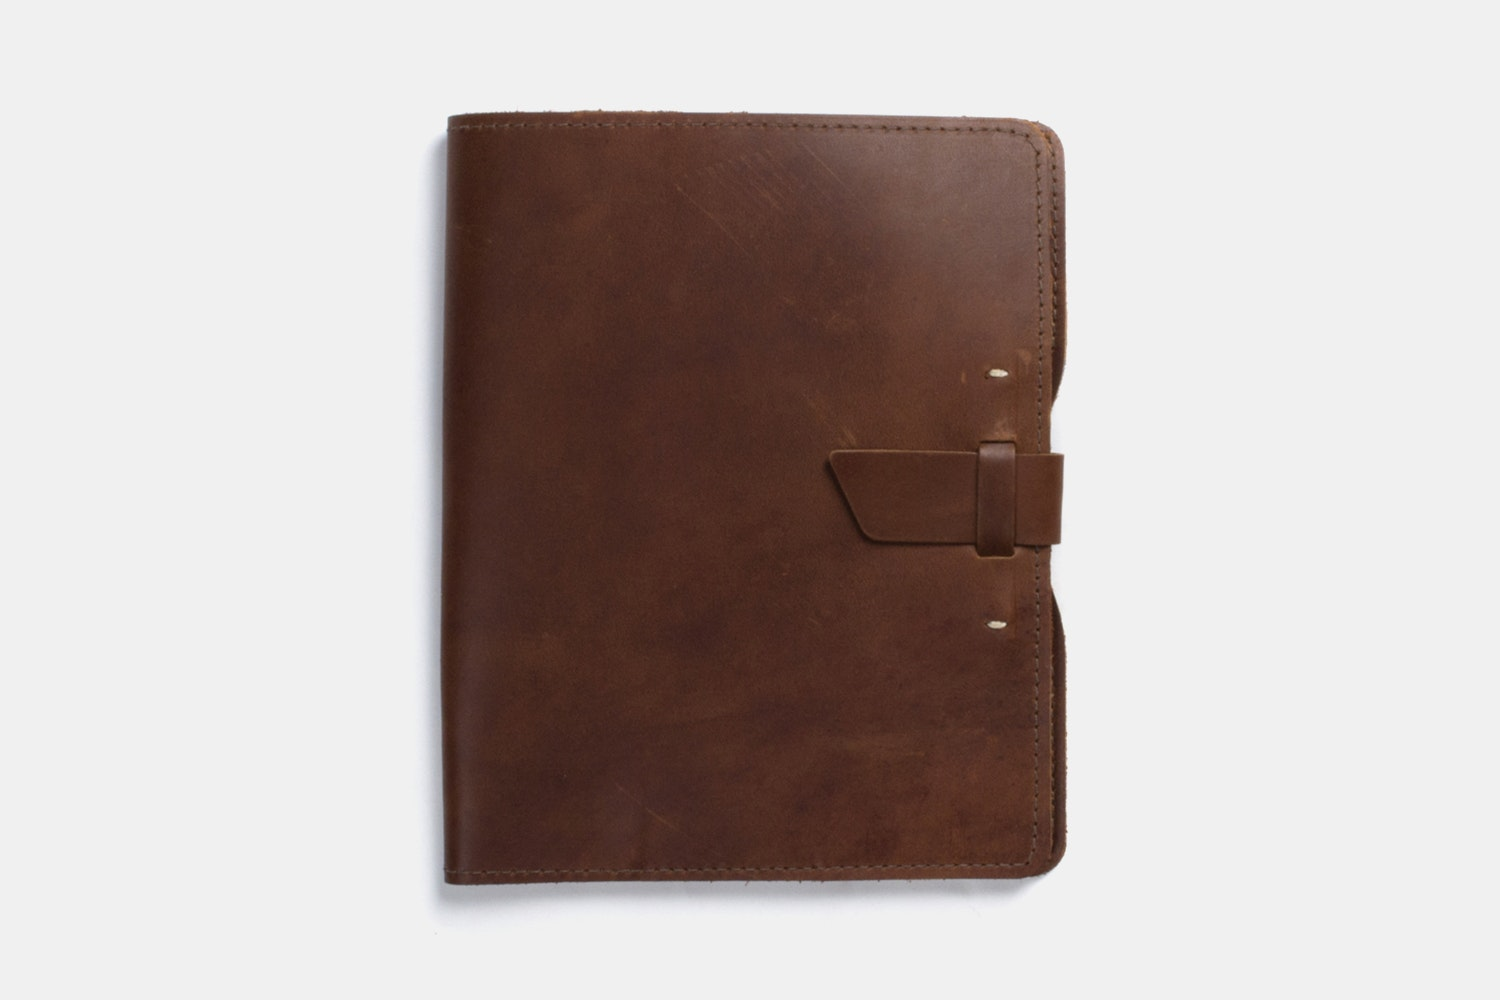 Rustico Leather iPad Cases